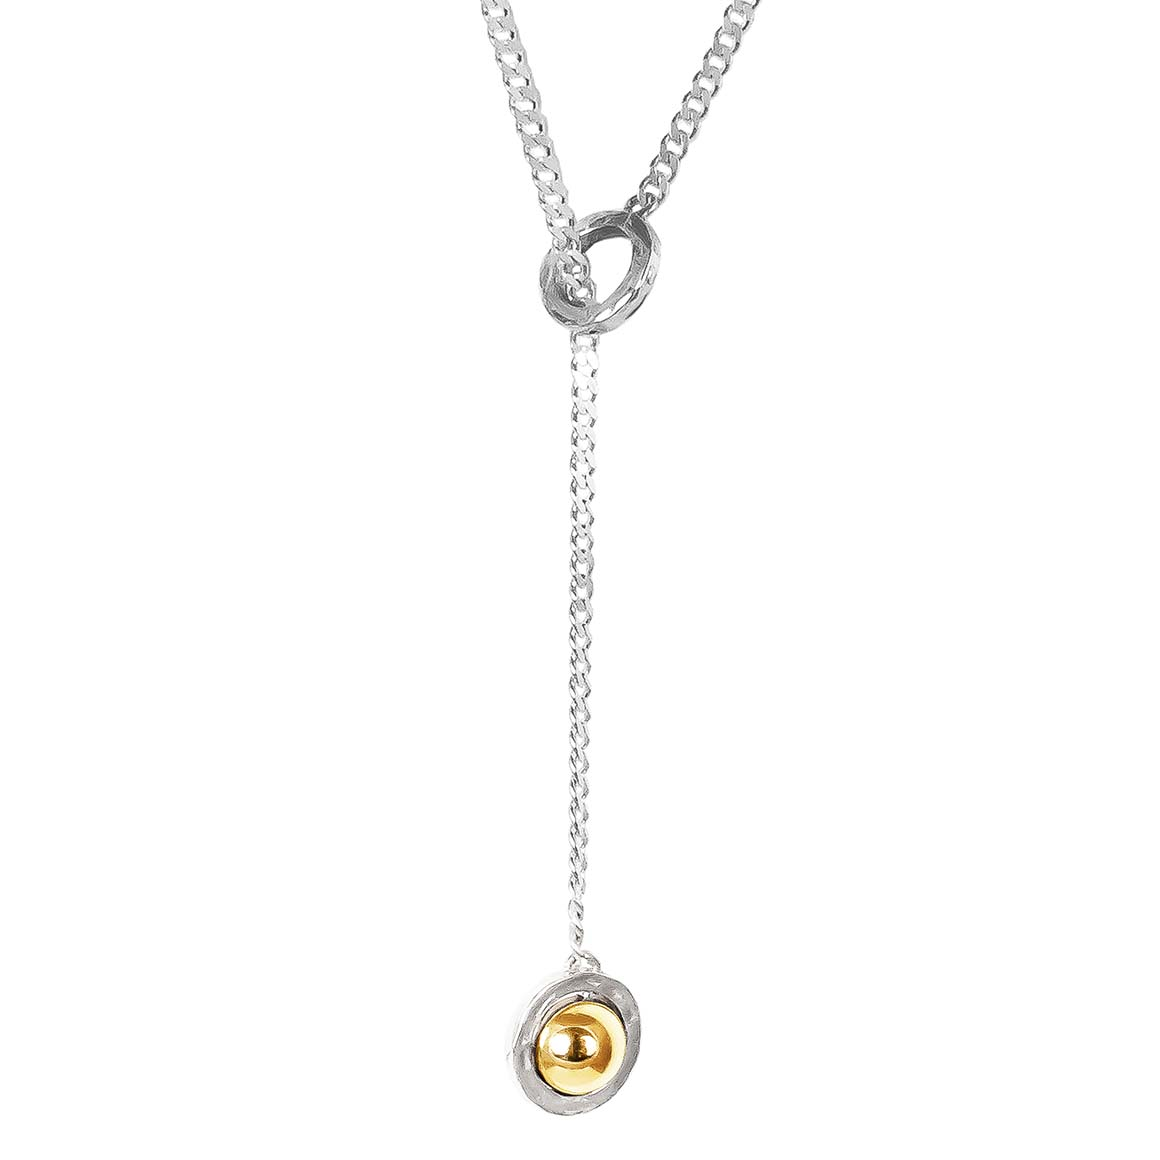 Atticus Large Charm Lariet Necklace | Polished Gold Detail | Trada Marketplace